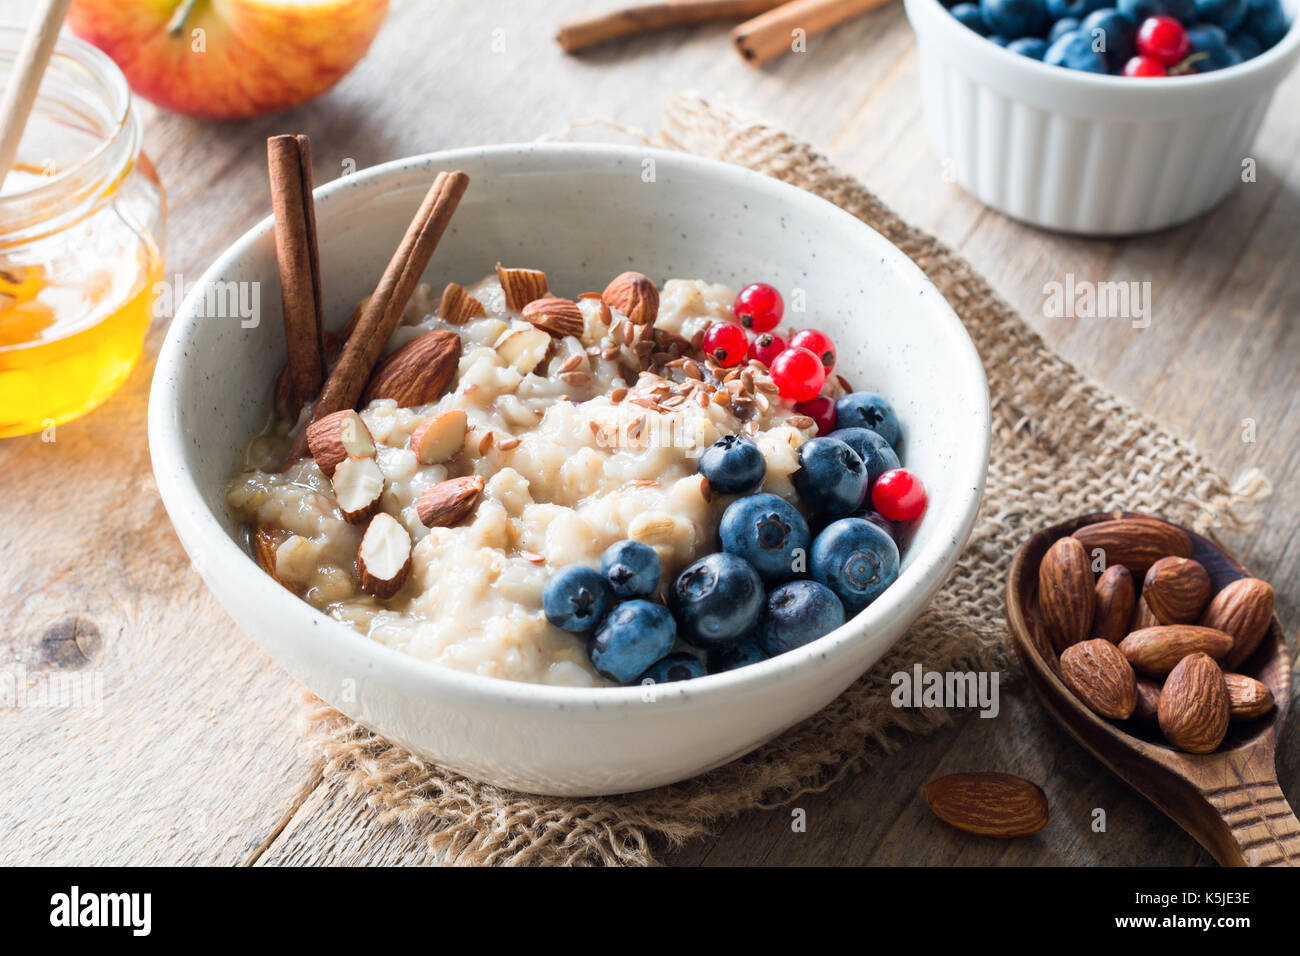 Oatmeal porridge with blueberries, almonds, cinnamon, honey, linseeds and red currants in bowl. Super food for healthy - Stock Image